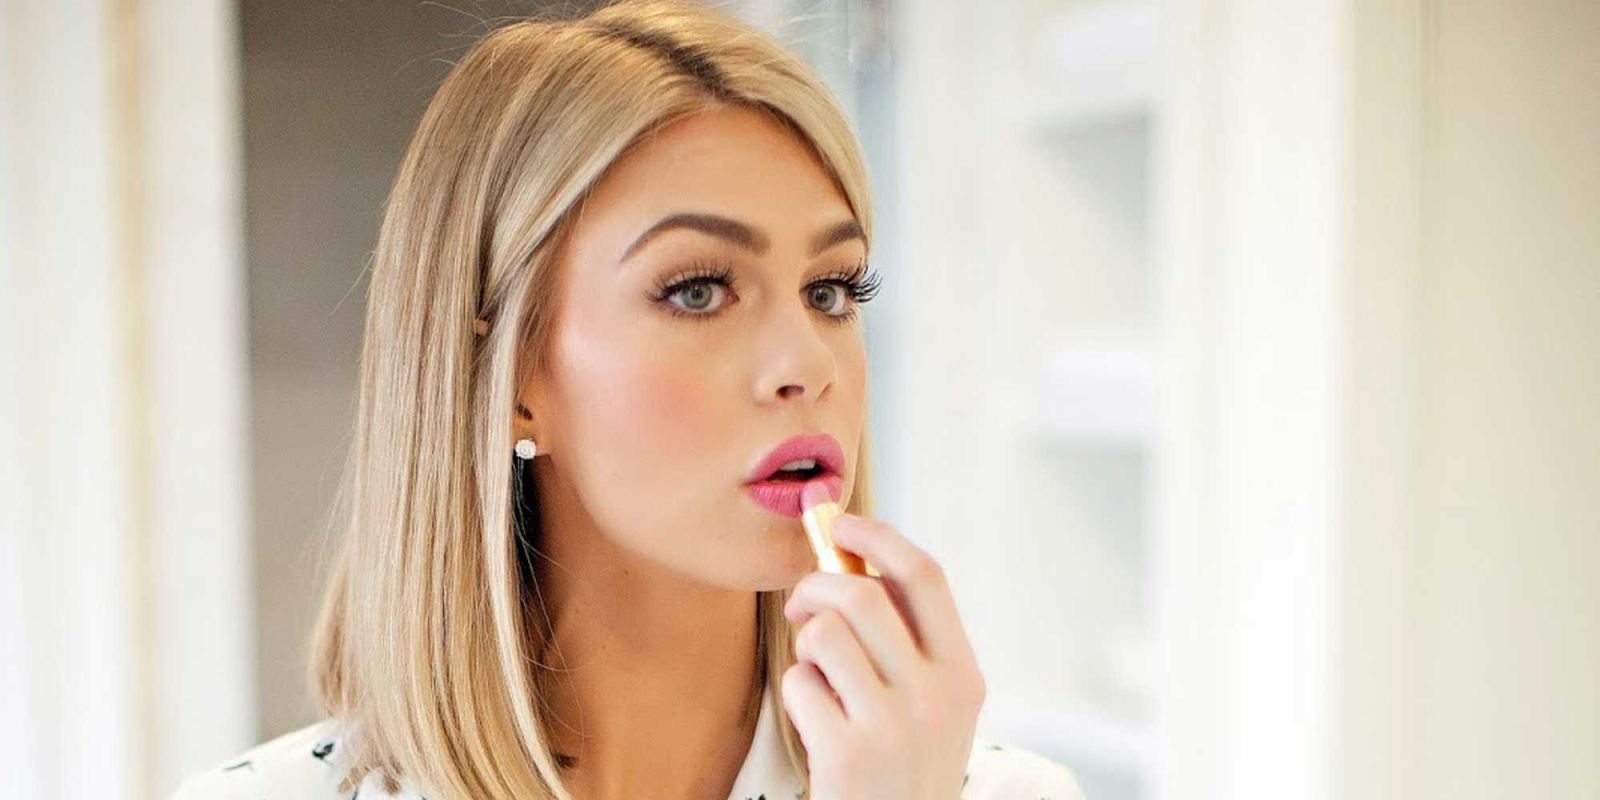 Doing My Own Makeup For Wedding : 19 Genius Tips for Brides Who Want to Do Their Own Wedding ...